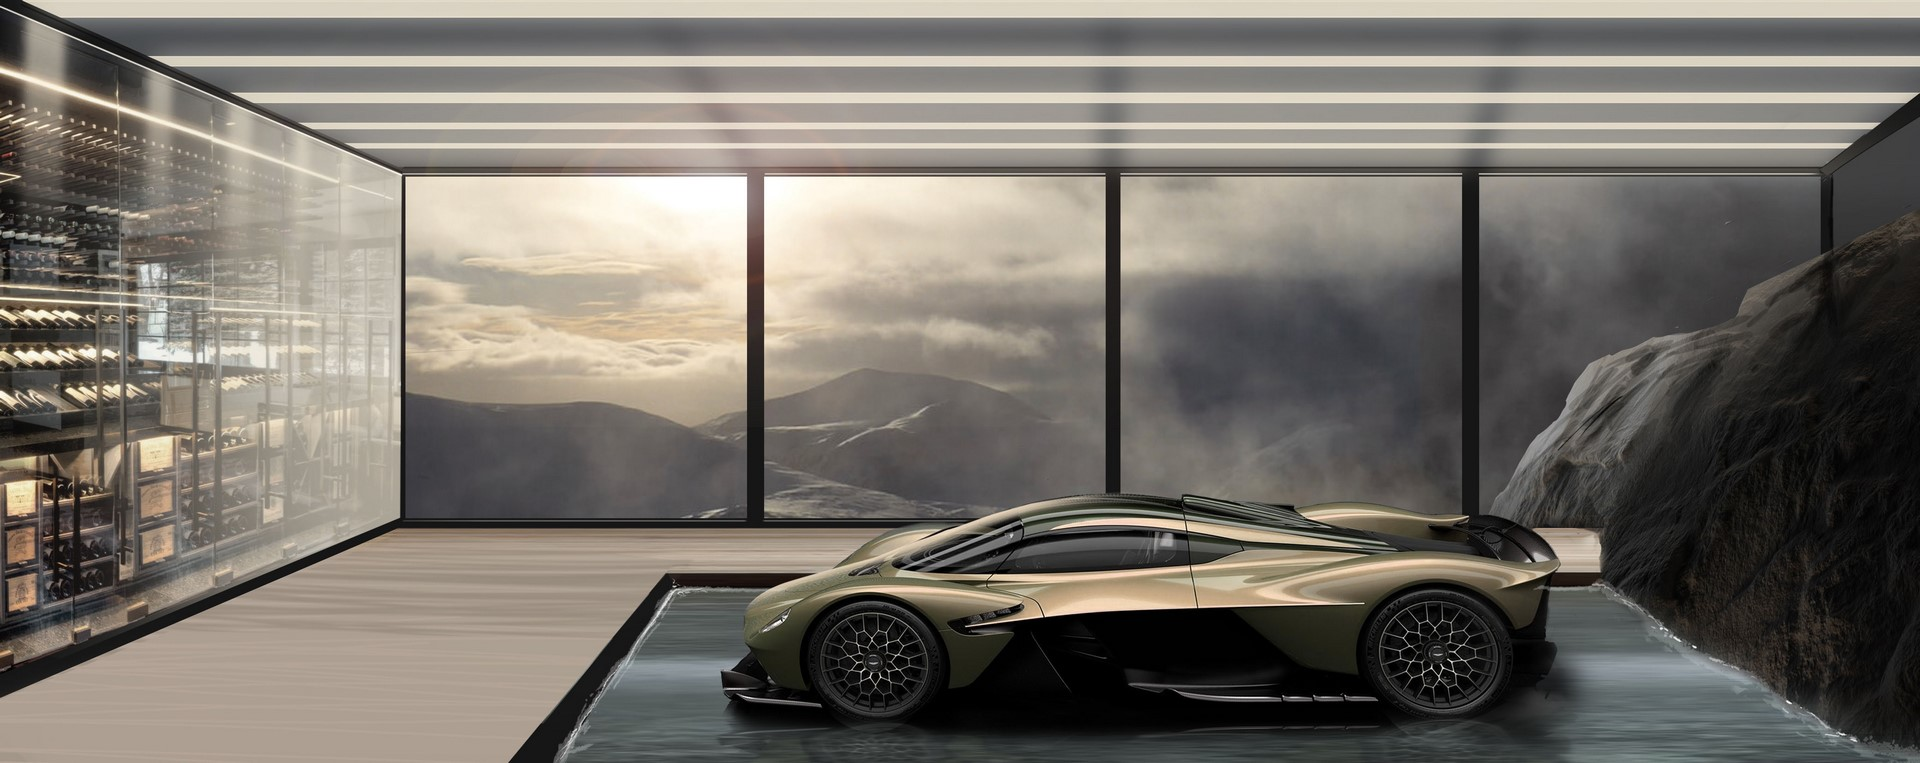 Aston-Martin-Automotive-parking-Galleries-and-Lairs-revealed-at-Pebble-Beach_01-5